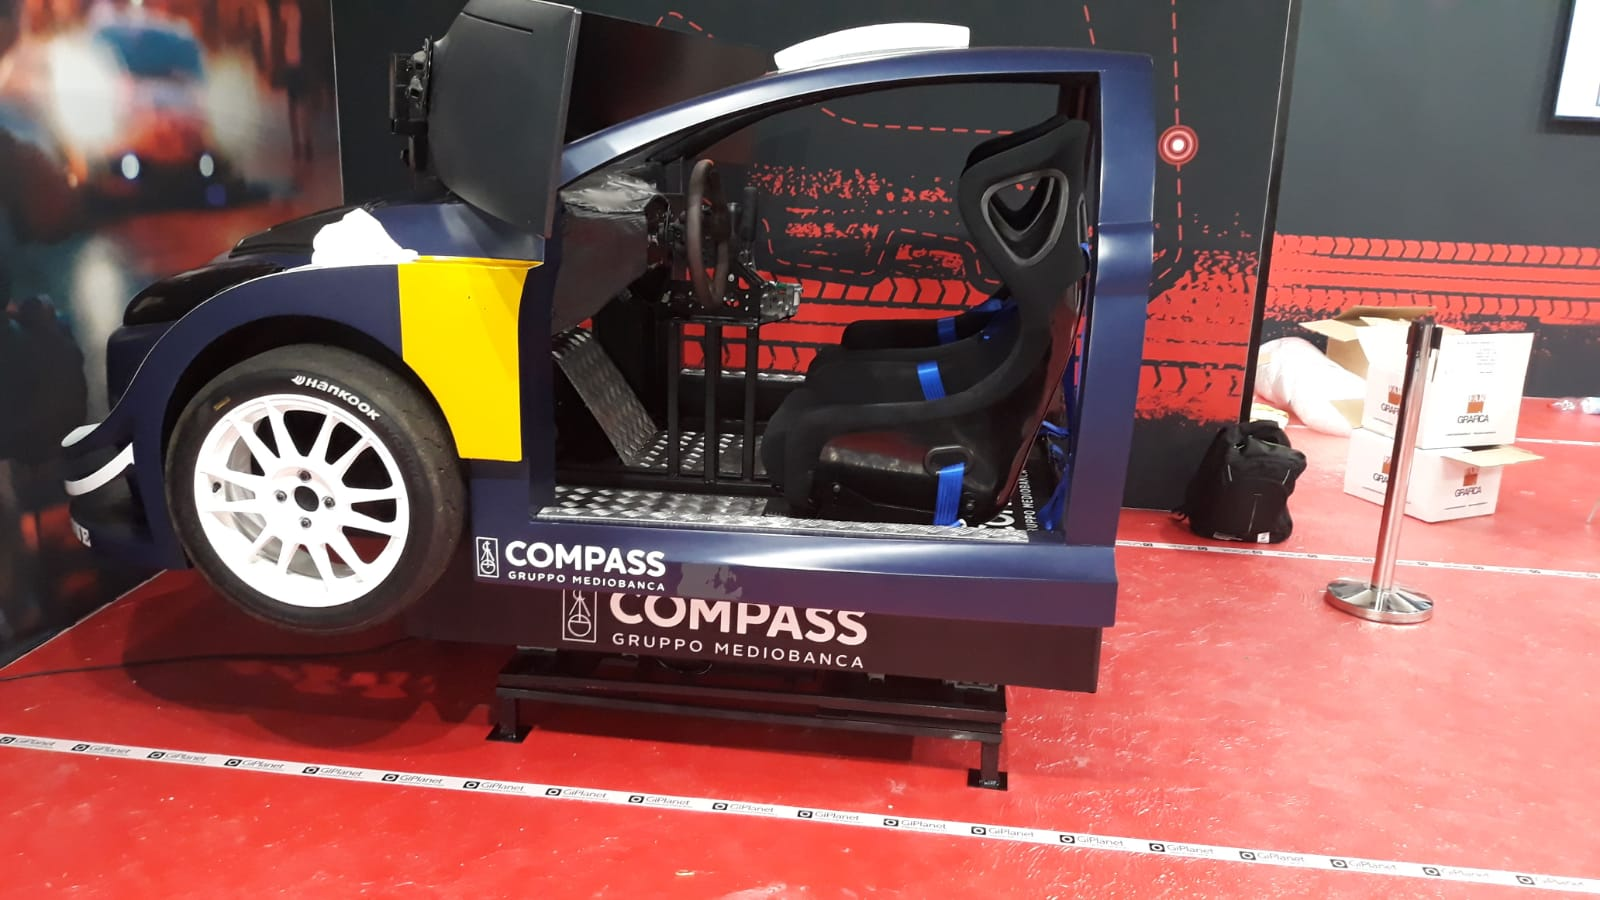 Simulatore Rally Fbrand Compass - Automotive Dealer Day